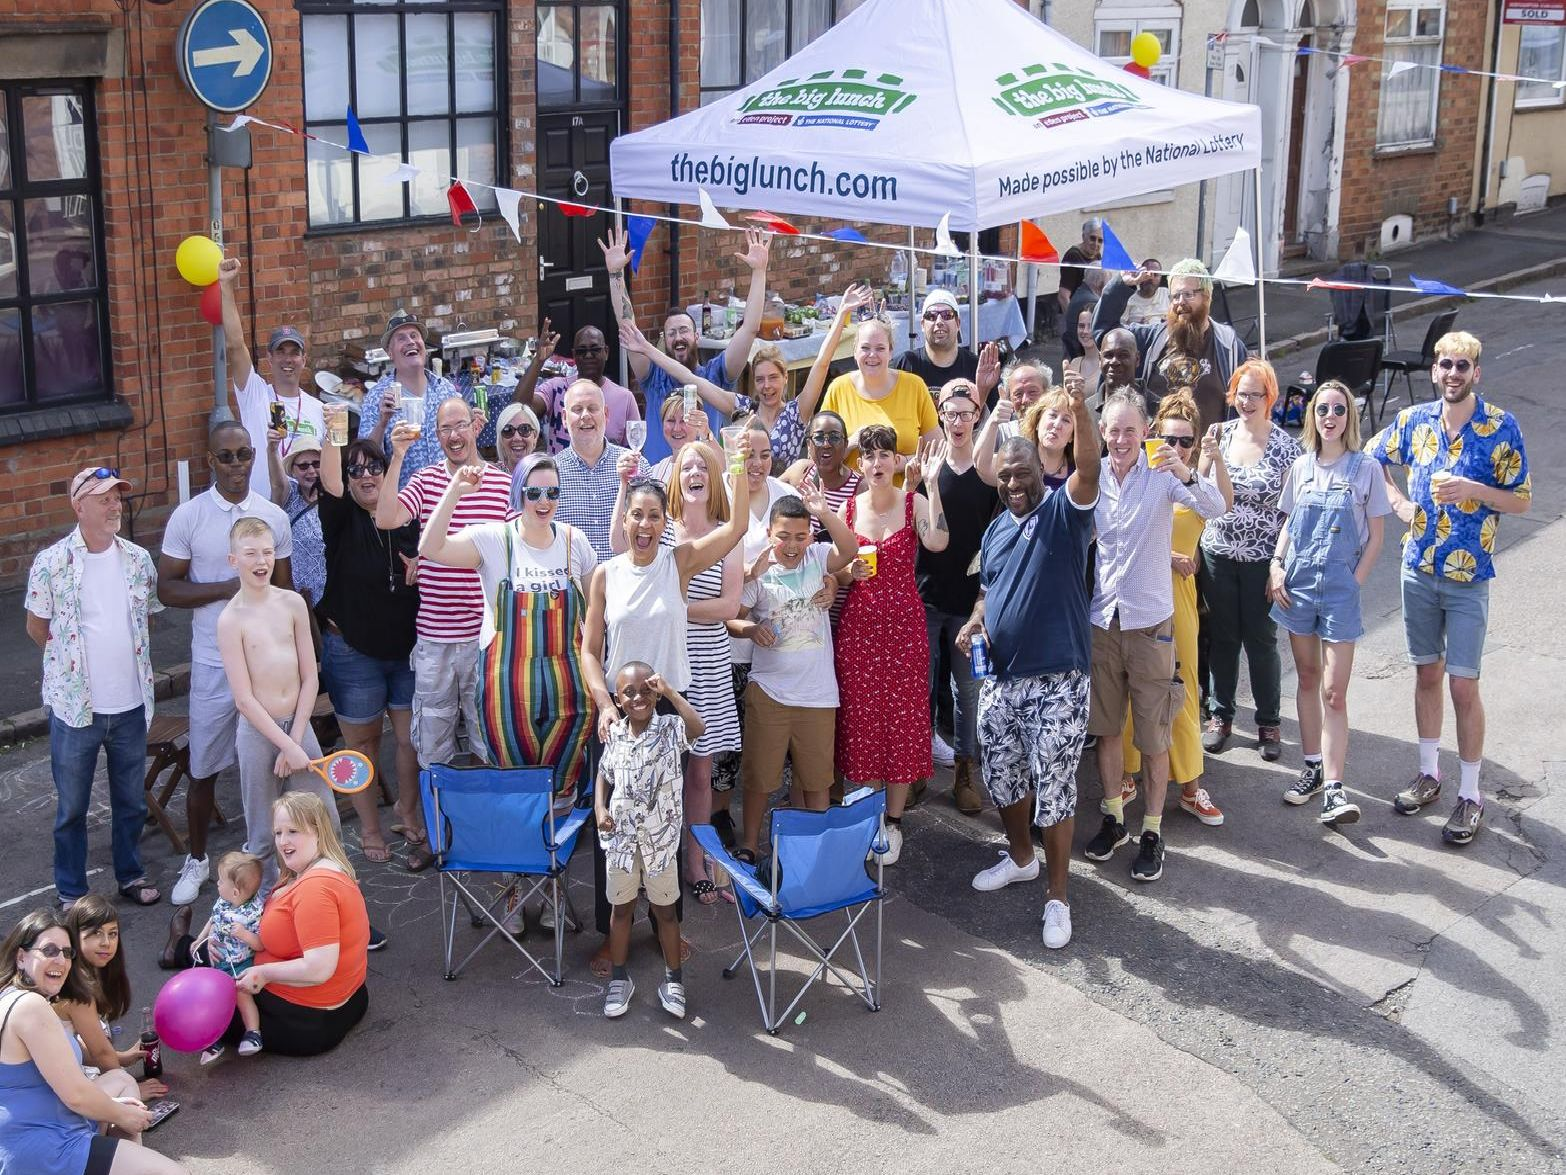 The Big Lunch event at The Mounts, Northampton